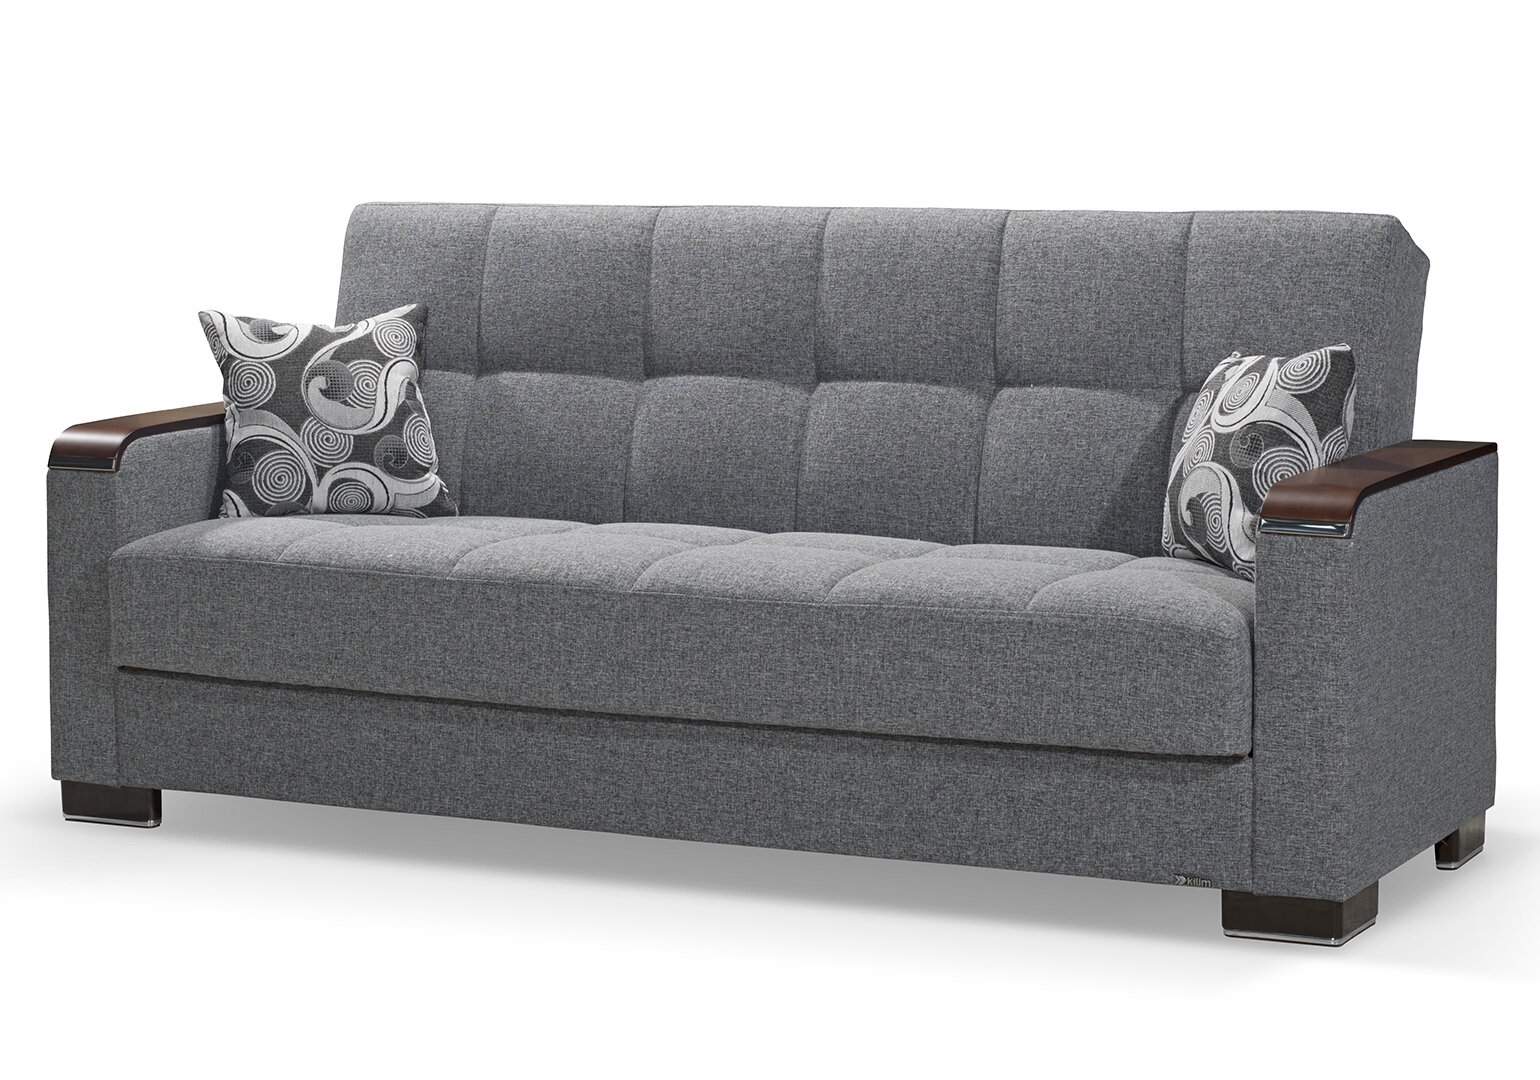 Chenille Sofas You Ll Love In 2020